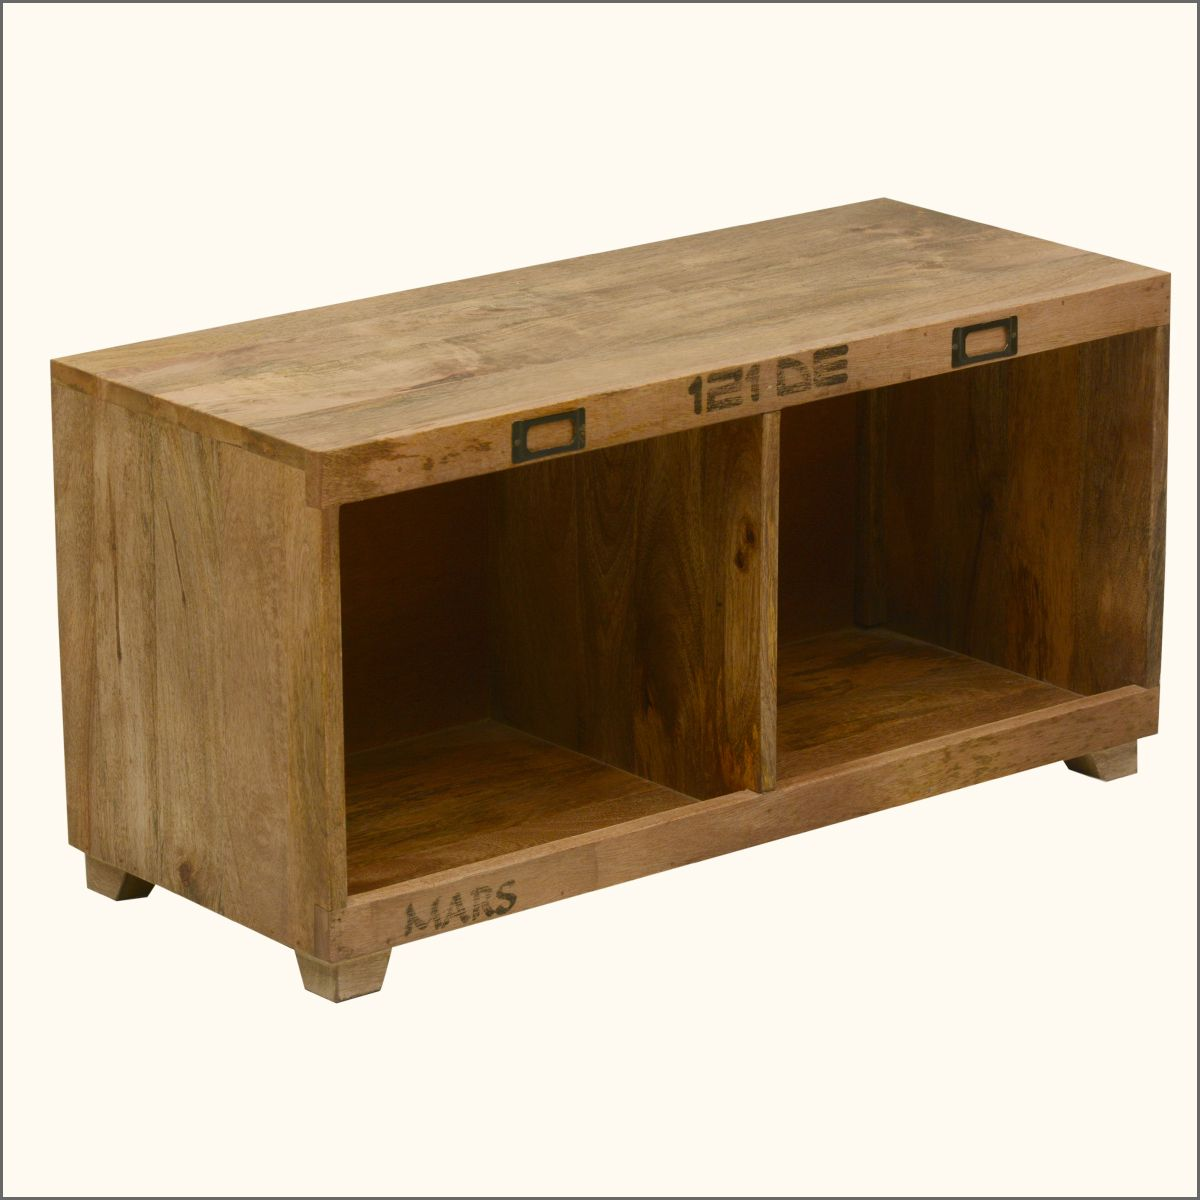 Anchors Away Mango Wood Coffee Table Bench w Open Cubbies | Storage ...